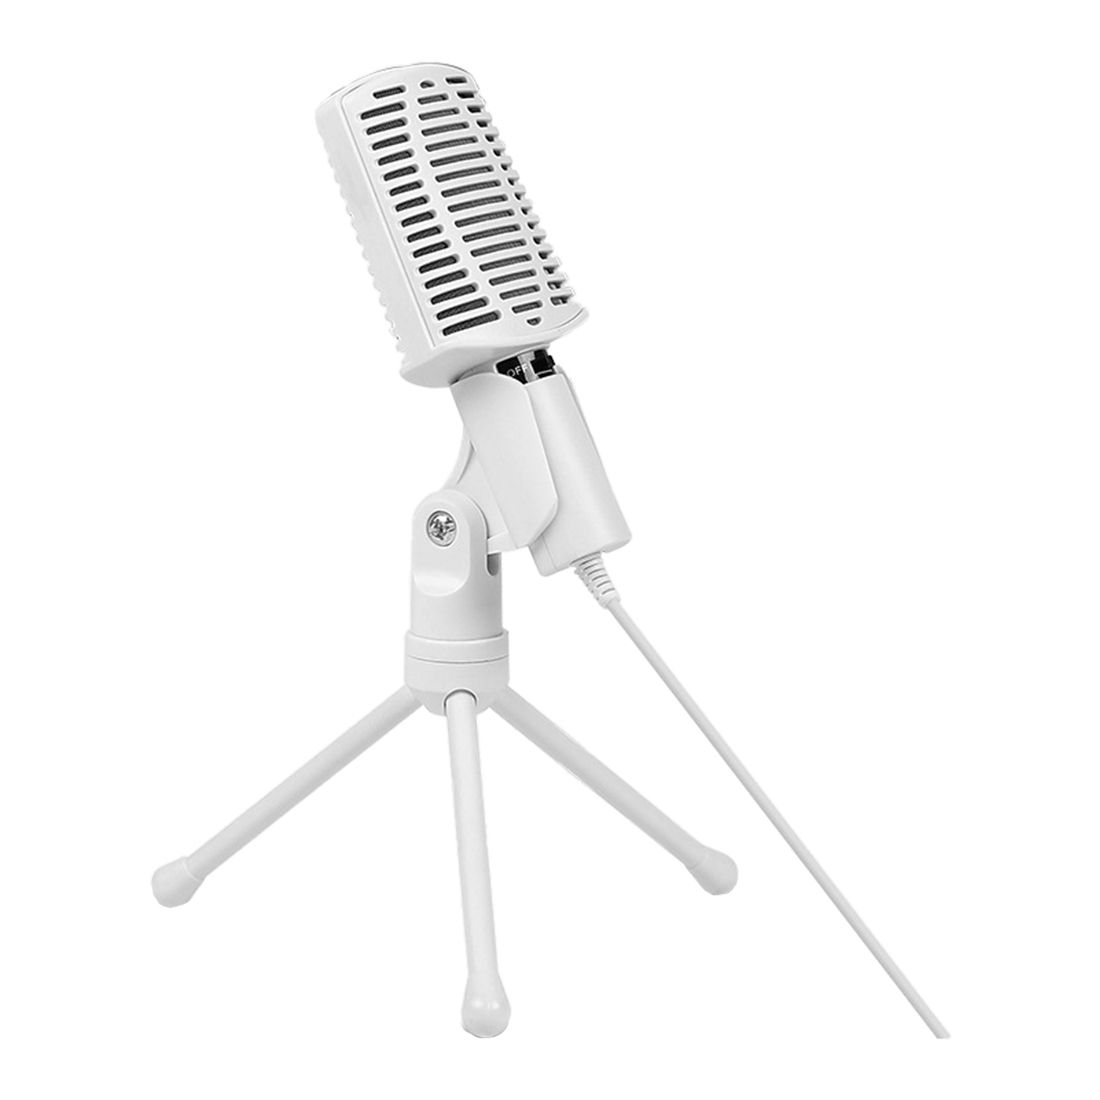 SF-940 Professional 3.5mm Condenser Sound Podcast Studio Microphone Mic with Tripod Stand For Desktop PC Notebook MSN(White)